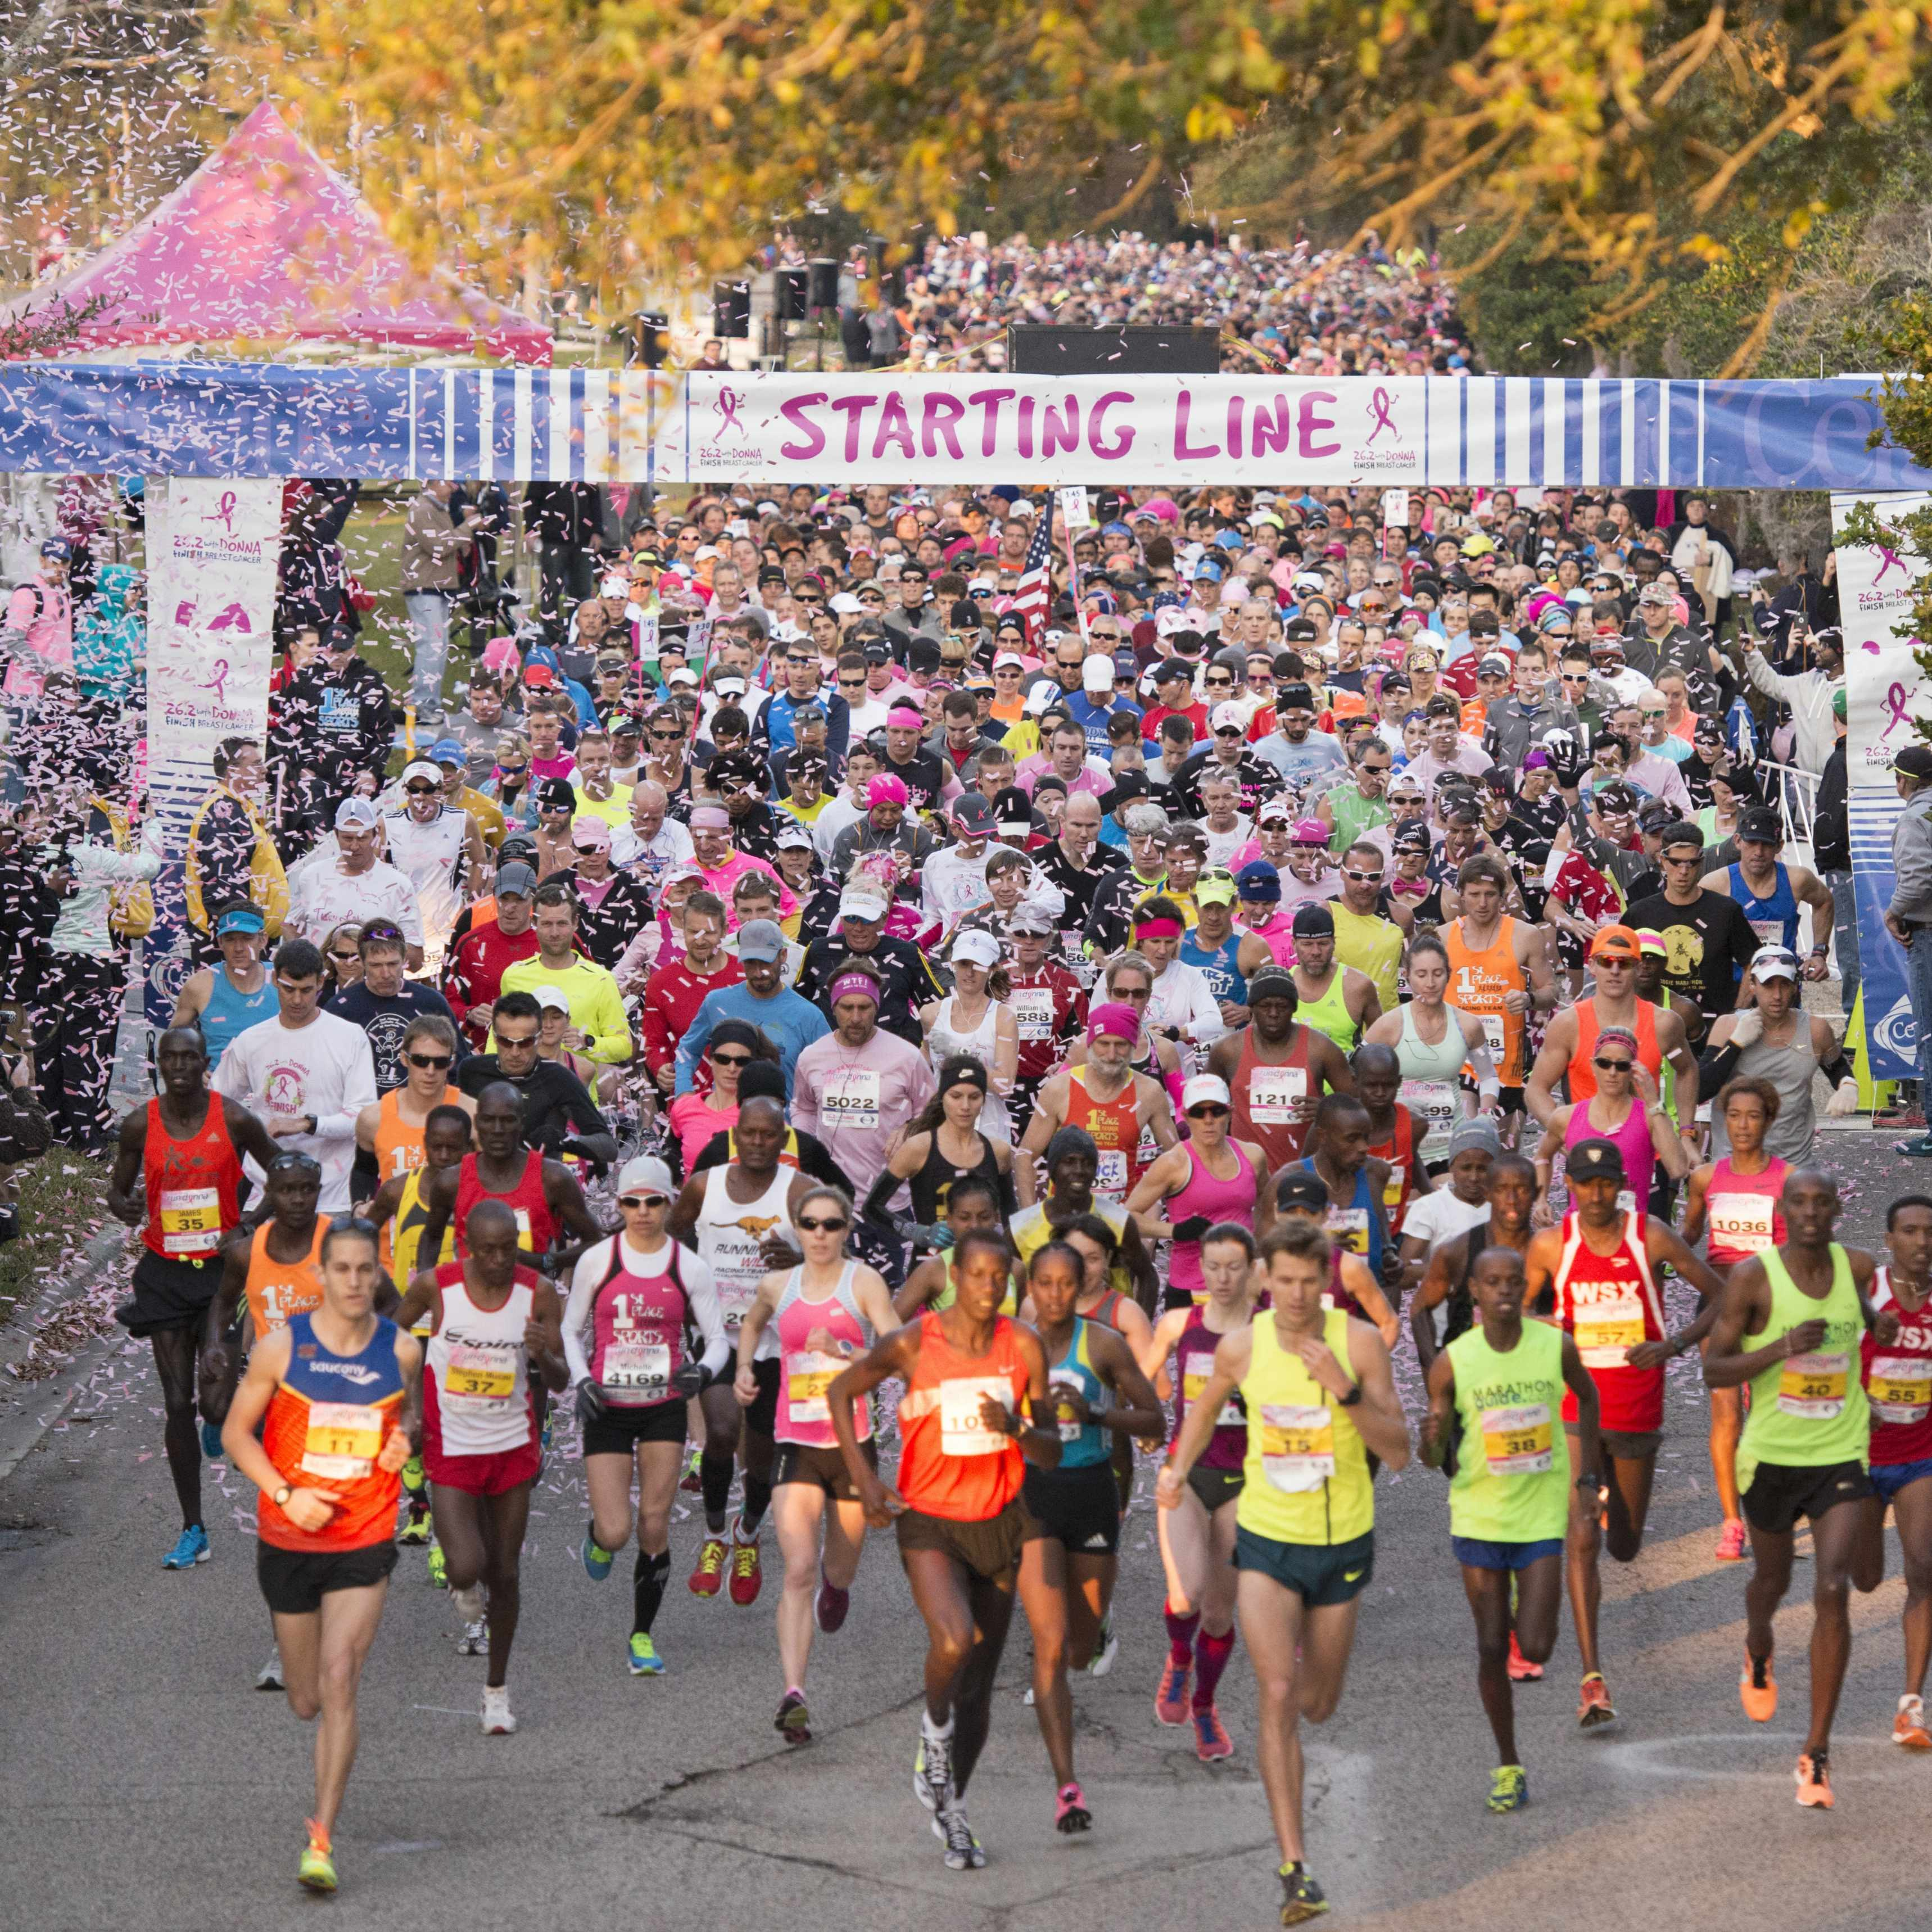 runners at the starting line in the Donna Breast Cancer Marathon